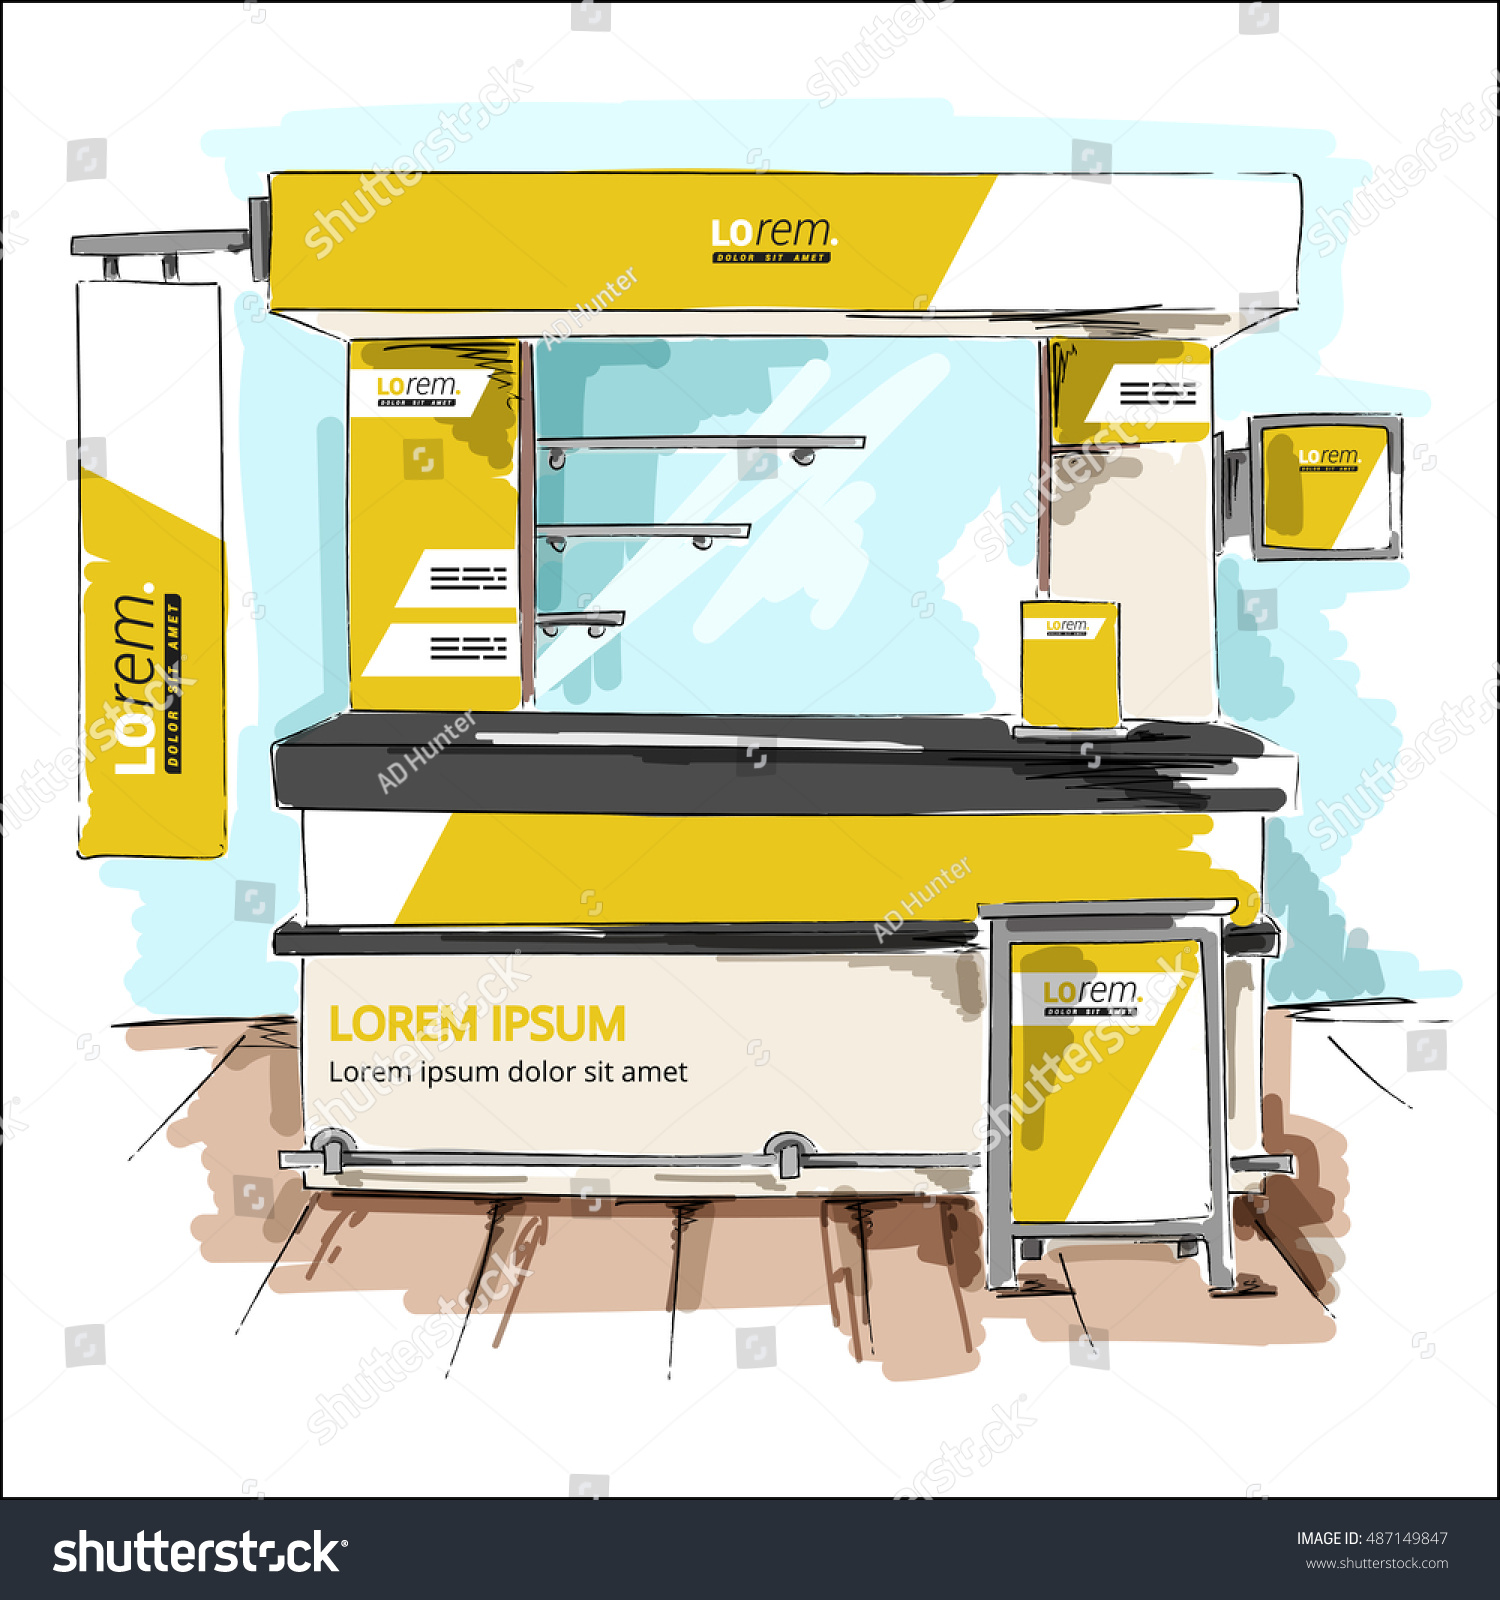 Exhibition Stand Design Vector : Yellow exhibition stand design booth template stock vector